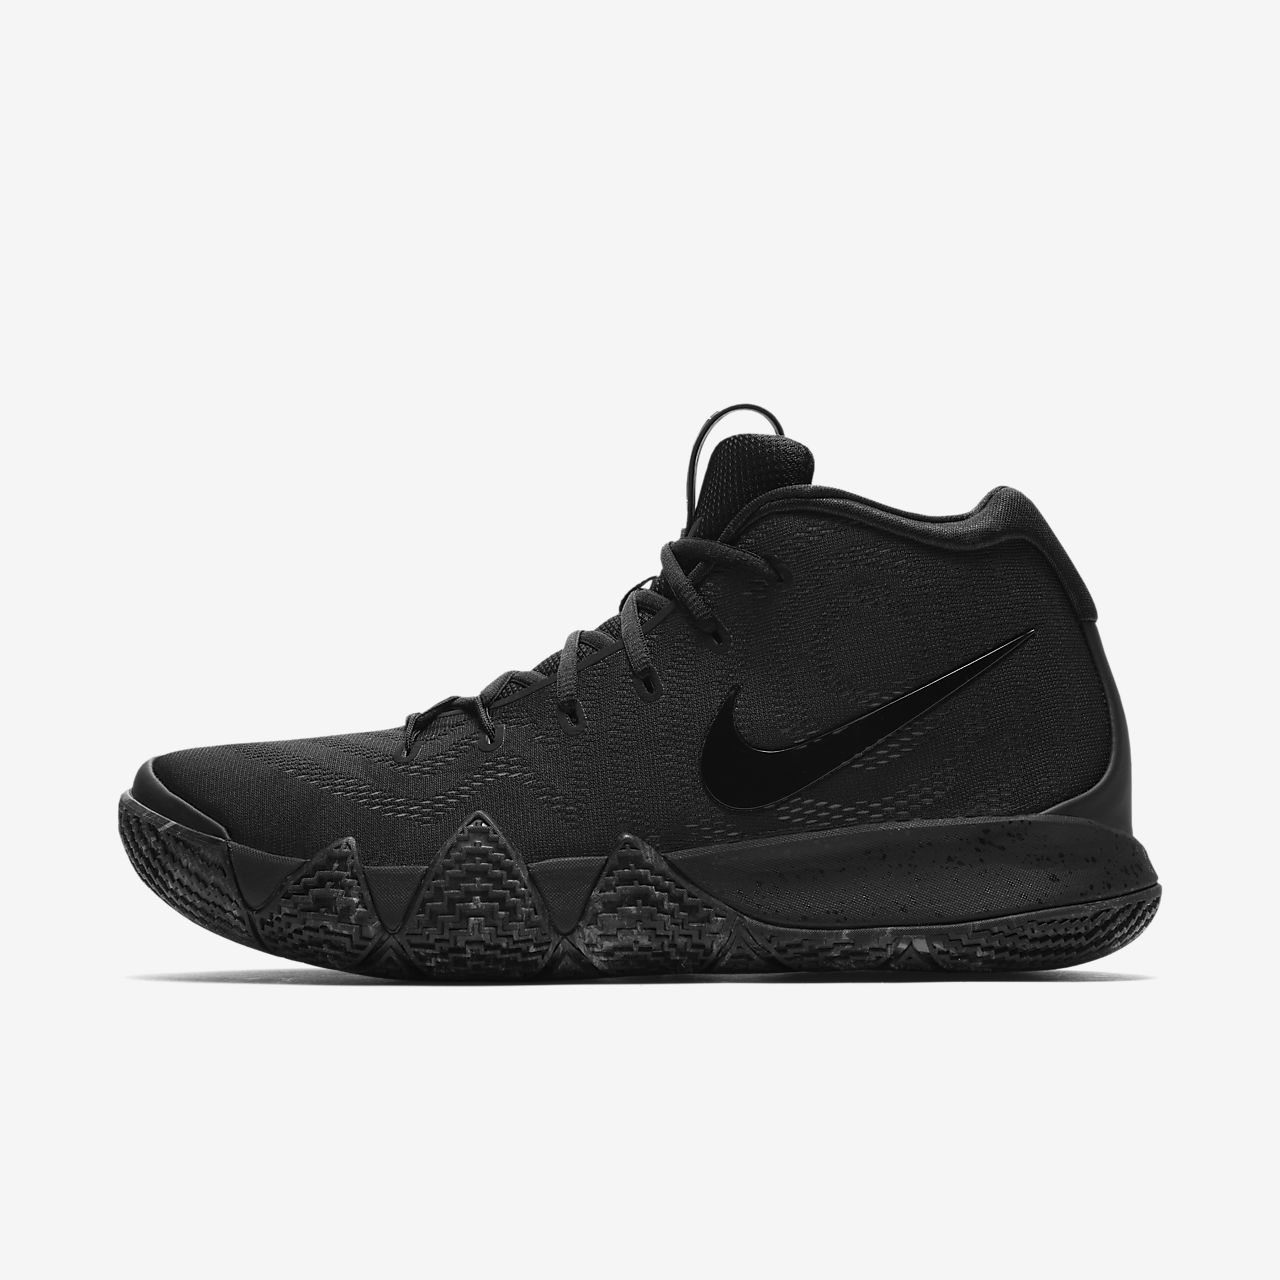 be067cece34 Kyrie 4 Basketball Shoe. Nike.com AU